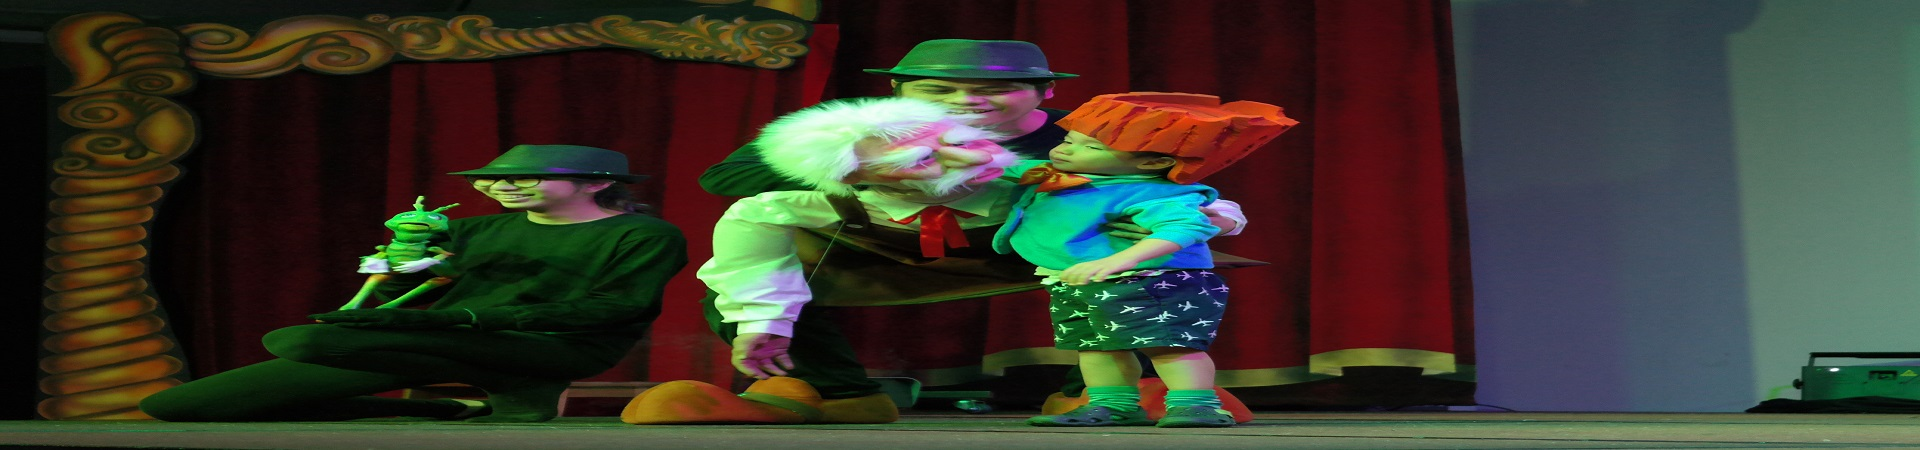 Pinocchio: A Whale of A Tale!